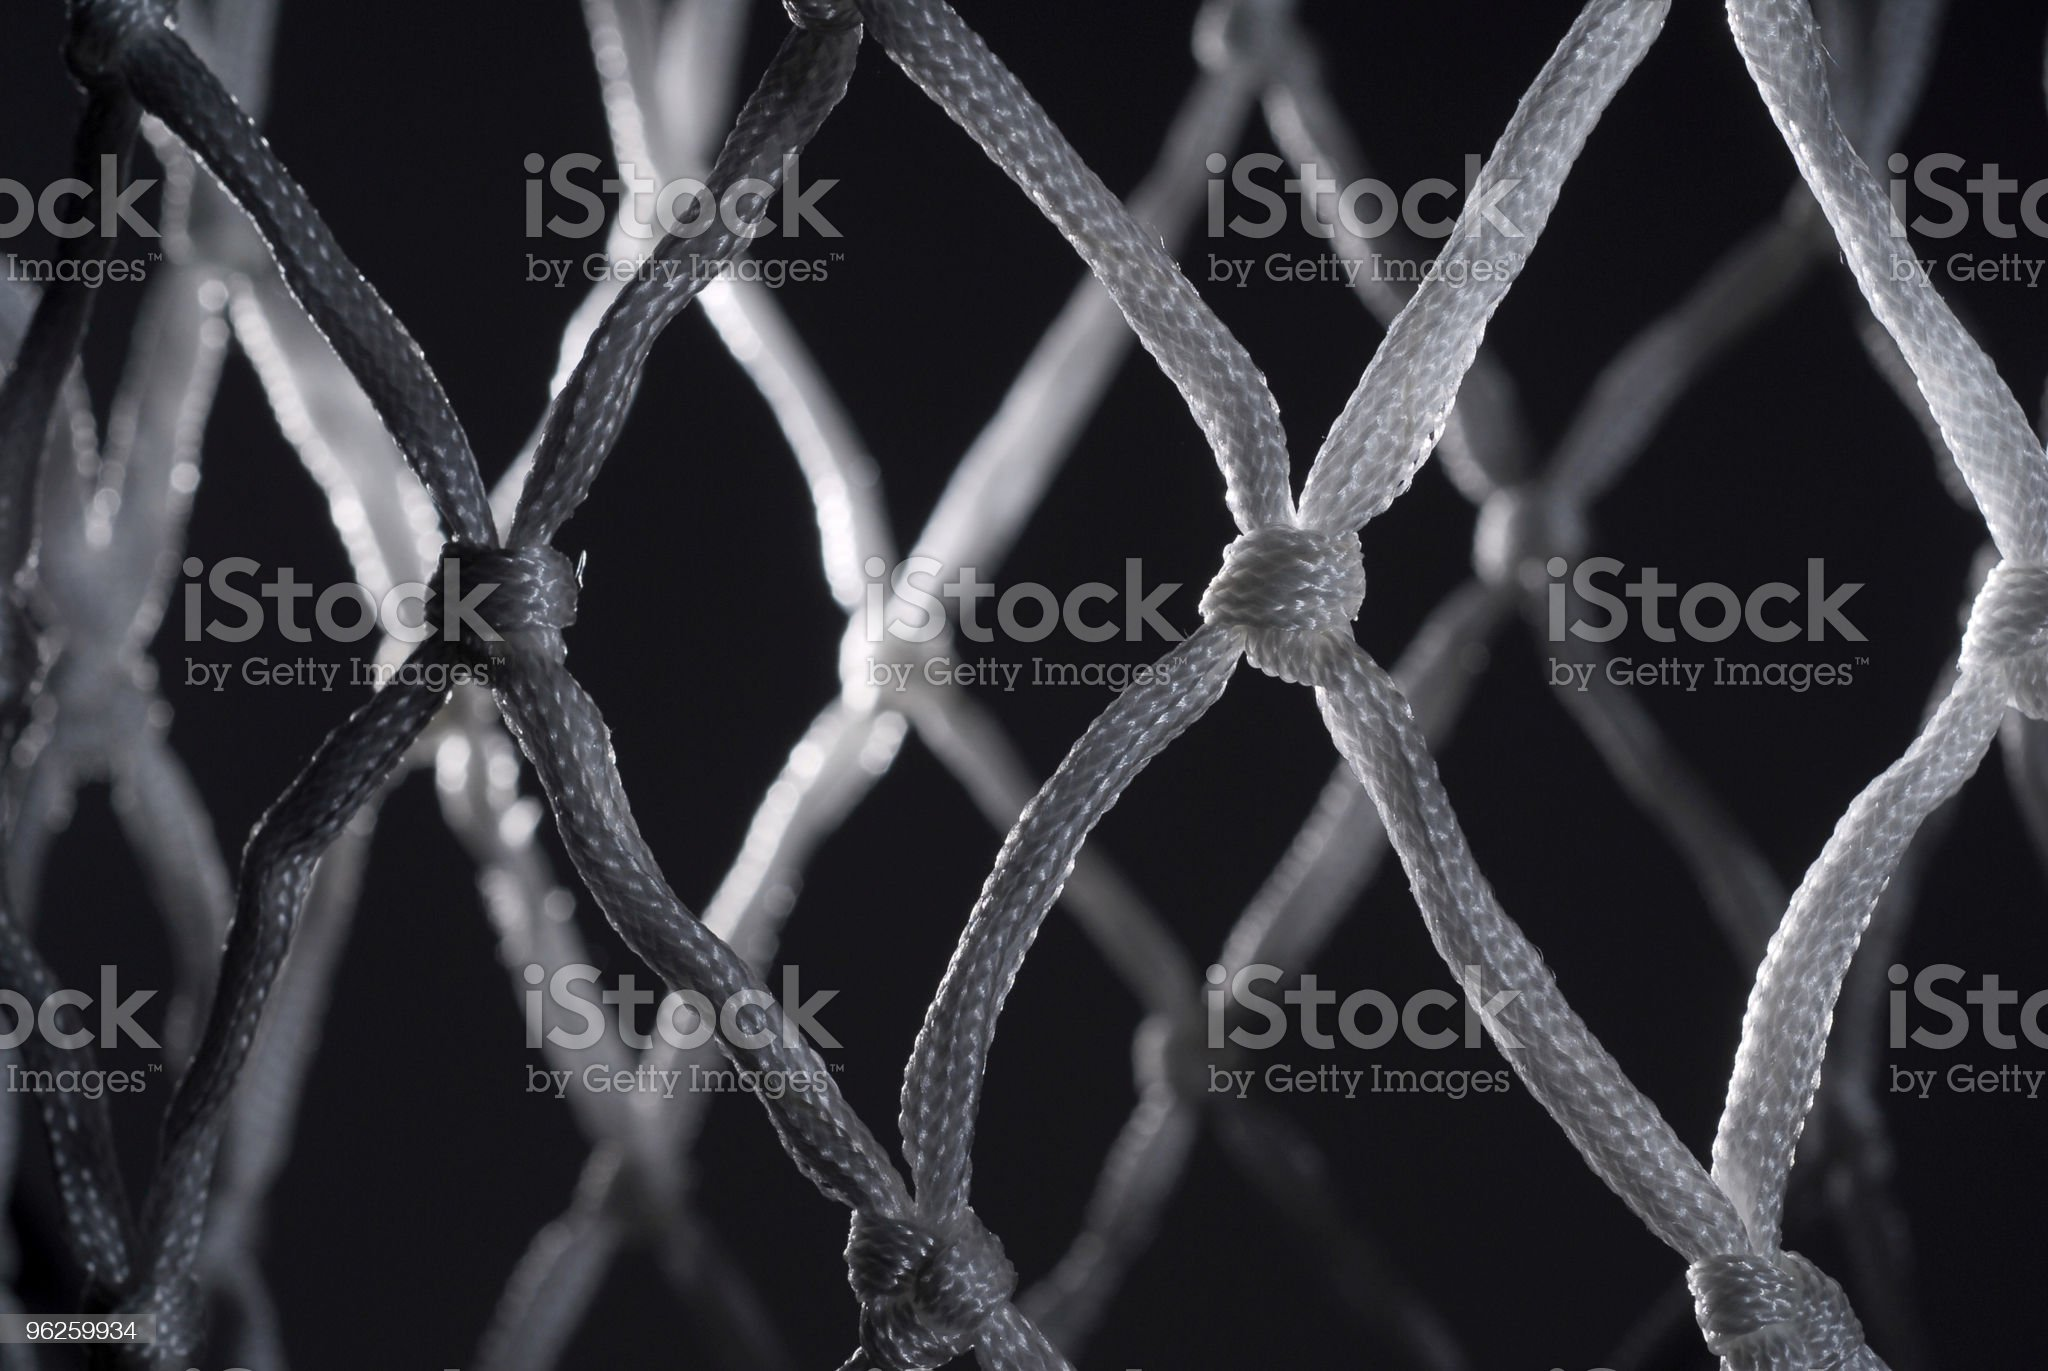 Basketball Net royalty-free stock photo